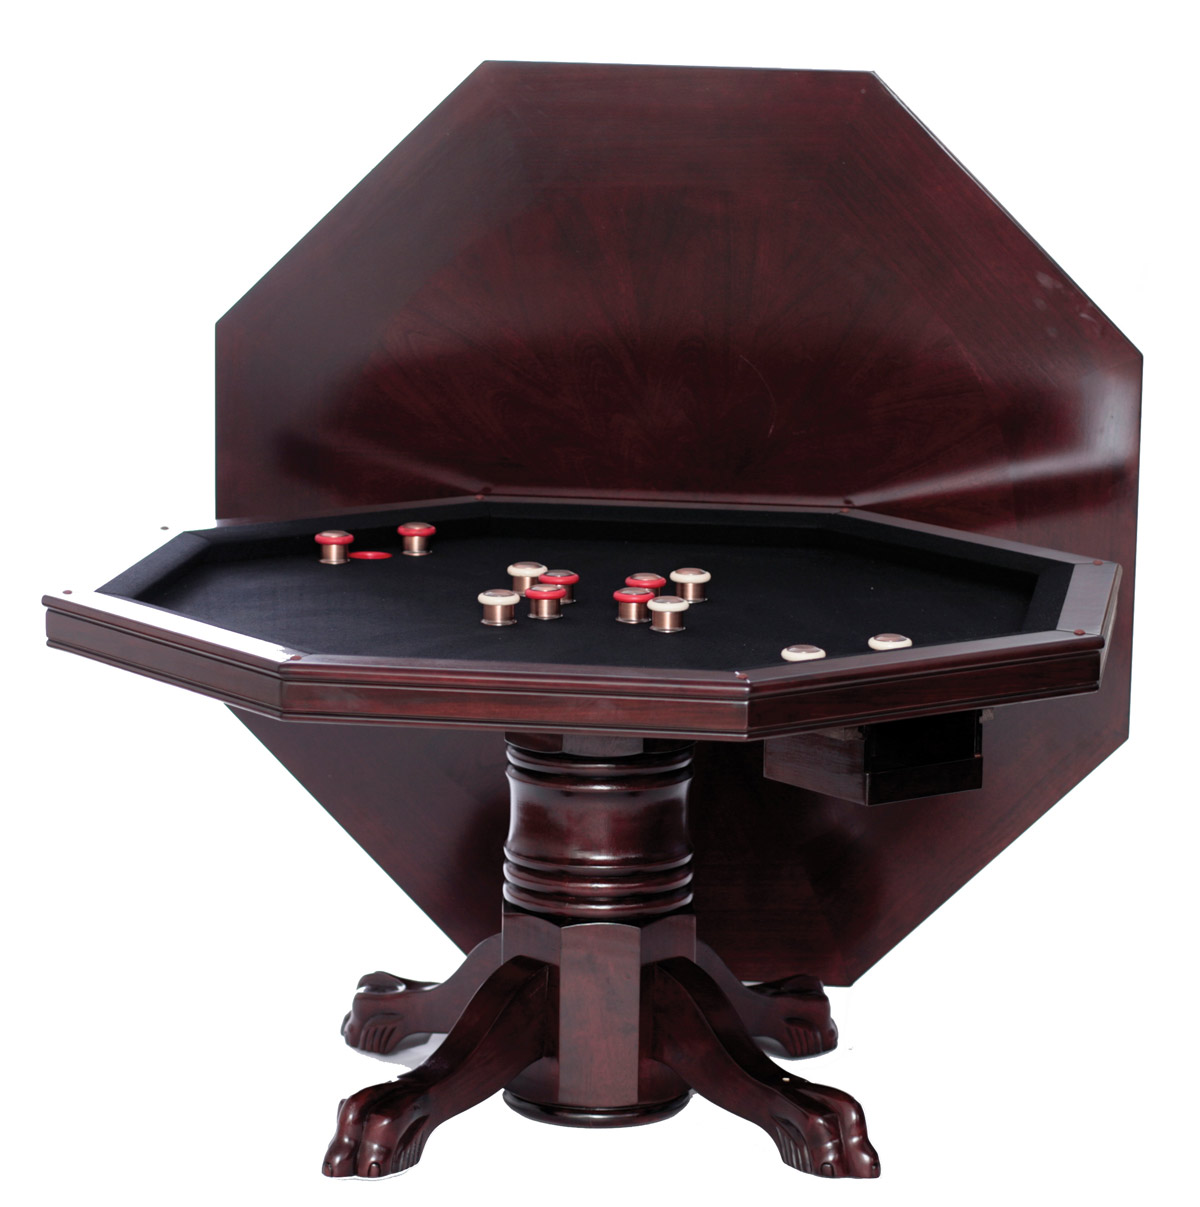 Dining poker bumper pool table